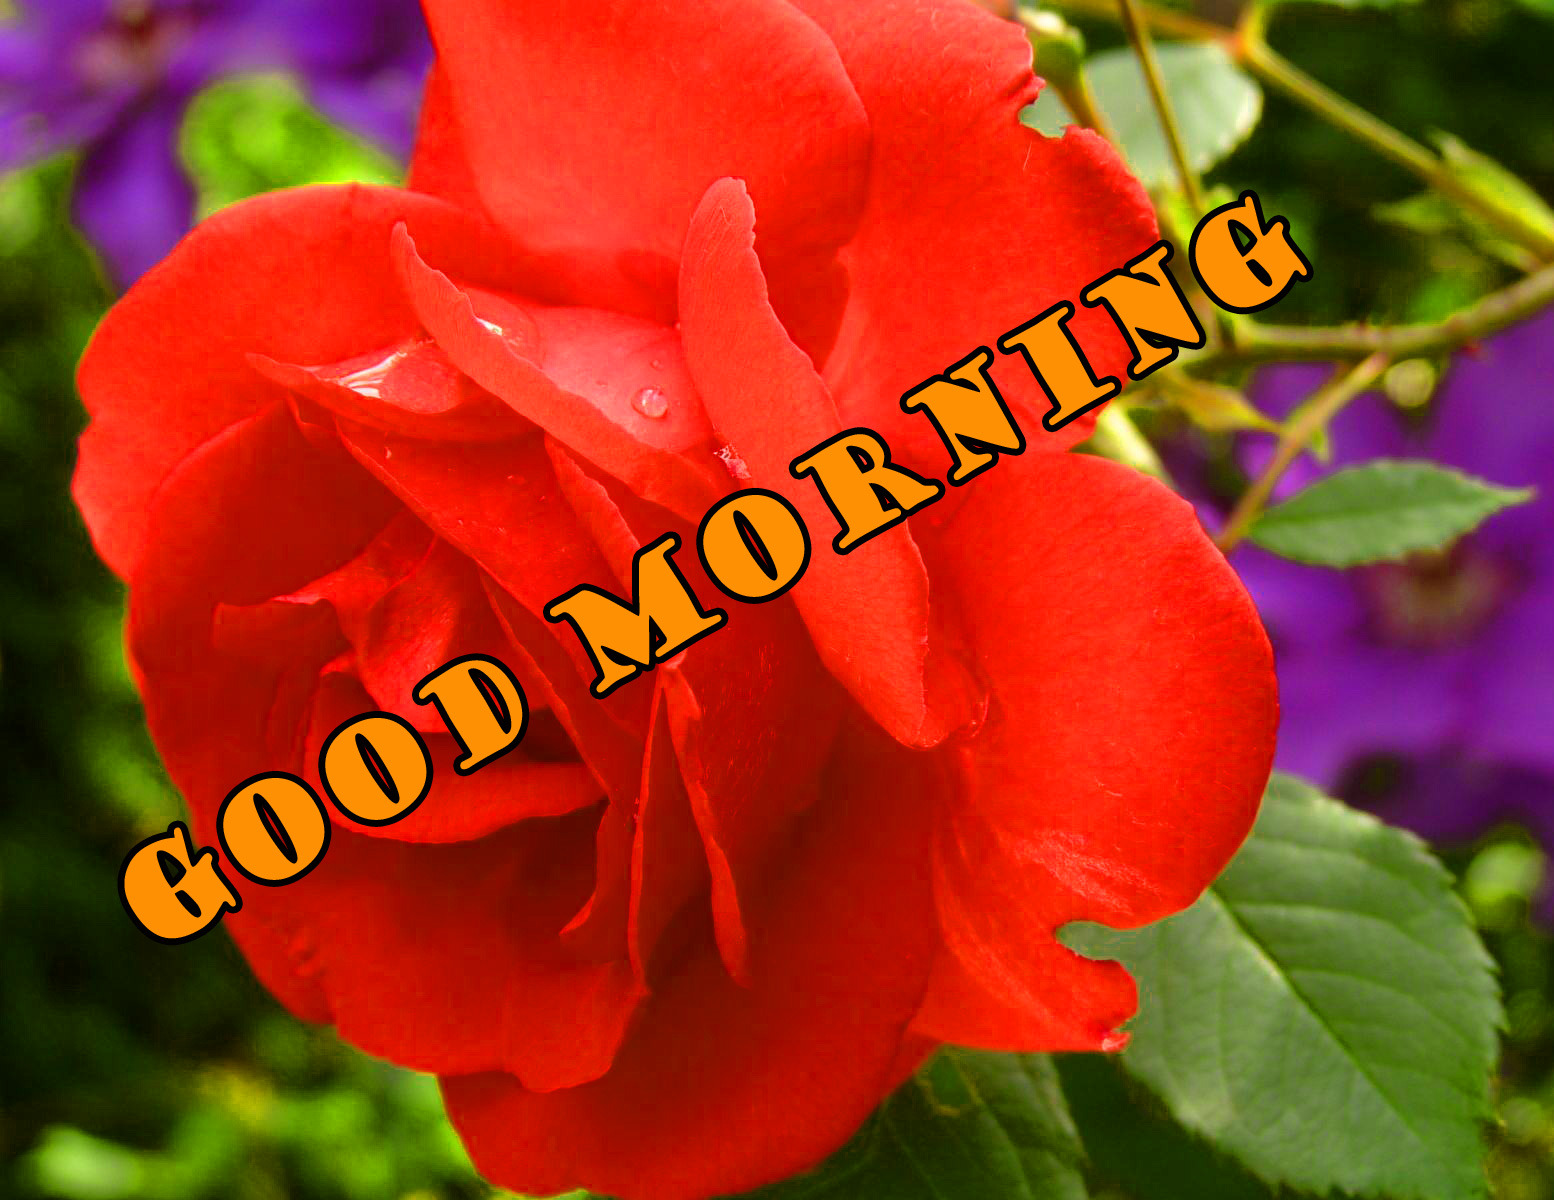 Good Morning Red Rose Photo Images Wallpaper HD Download